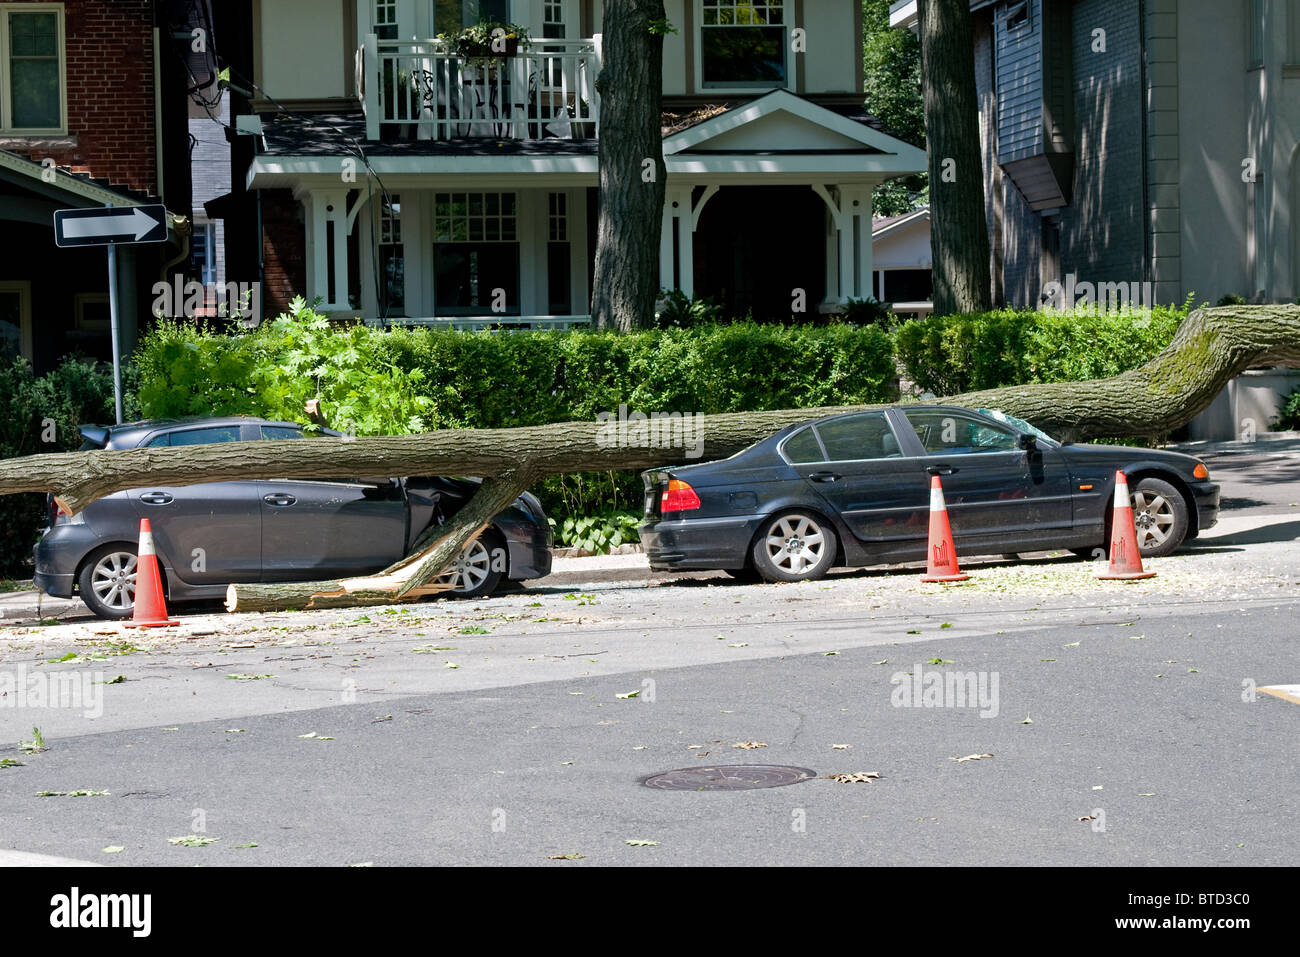 Two cars crushed by a fallen tree Stock Photo